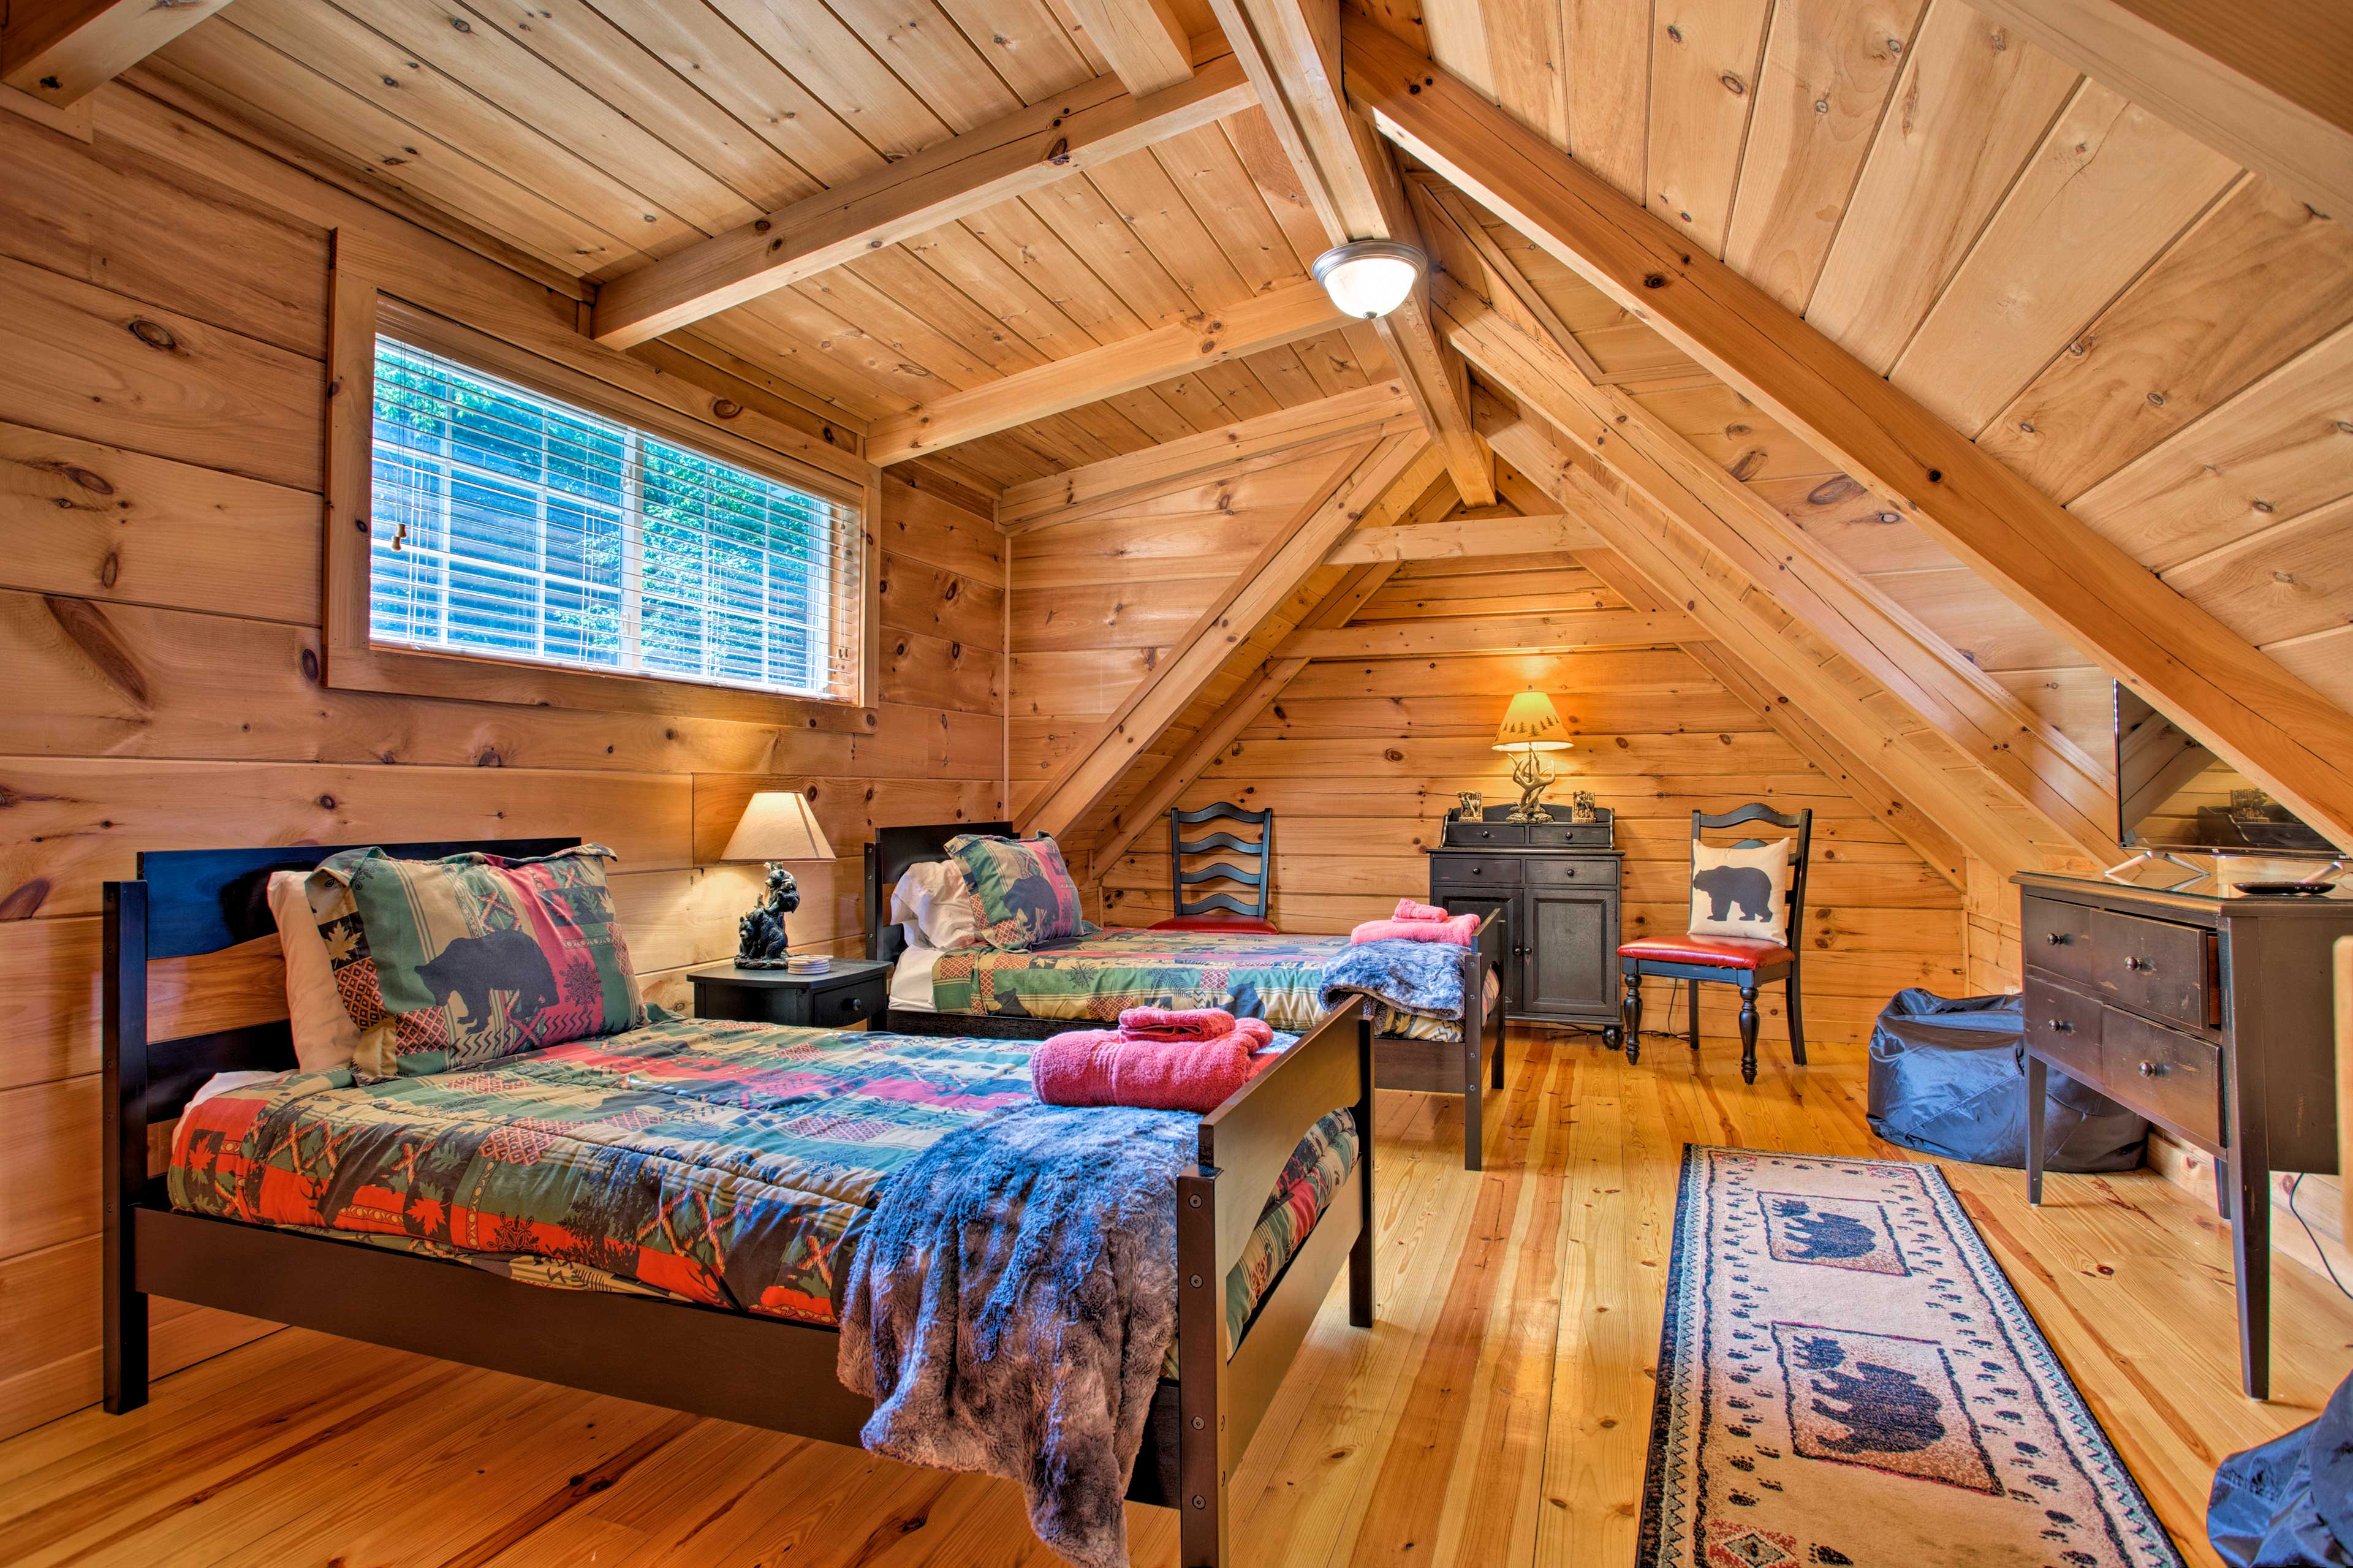 The kids can claim the loft with 2 twin beds, bean bag chairs & a TV.